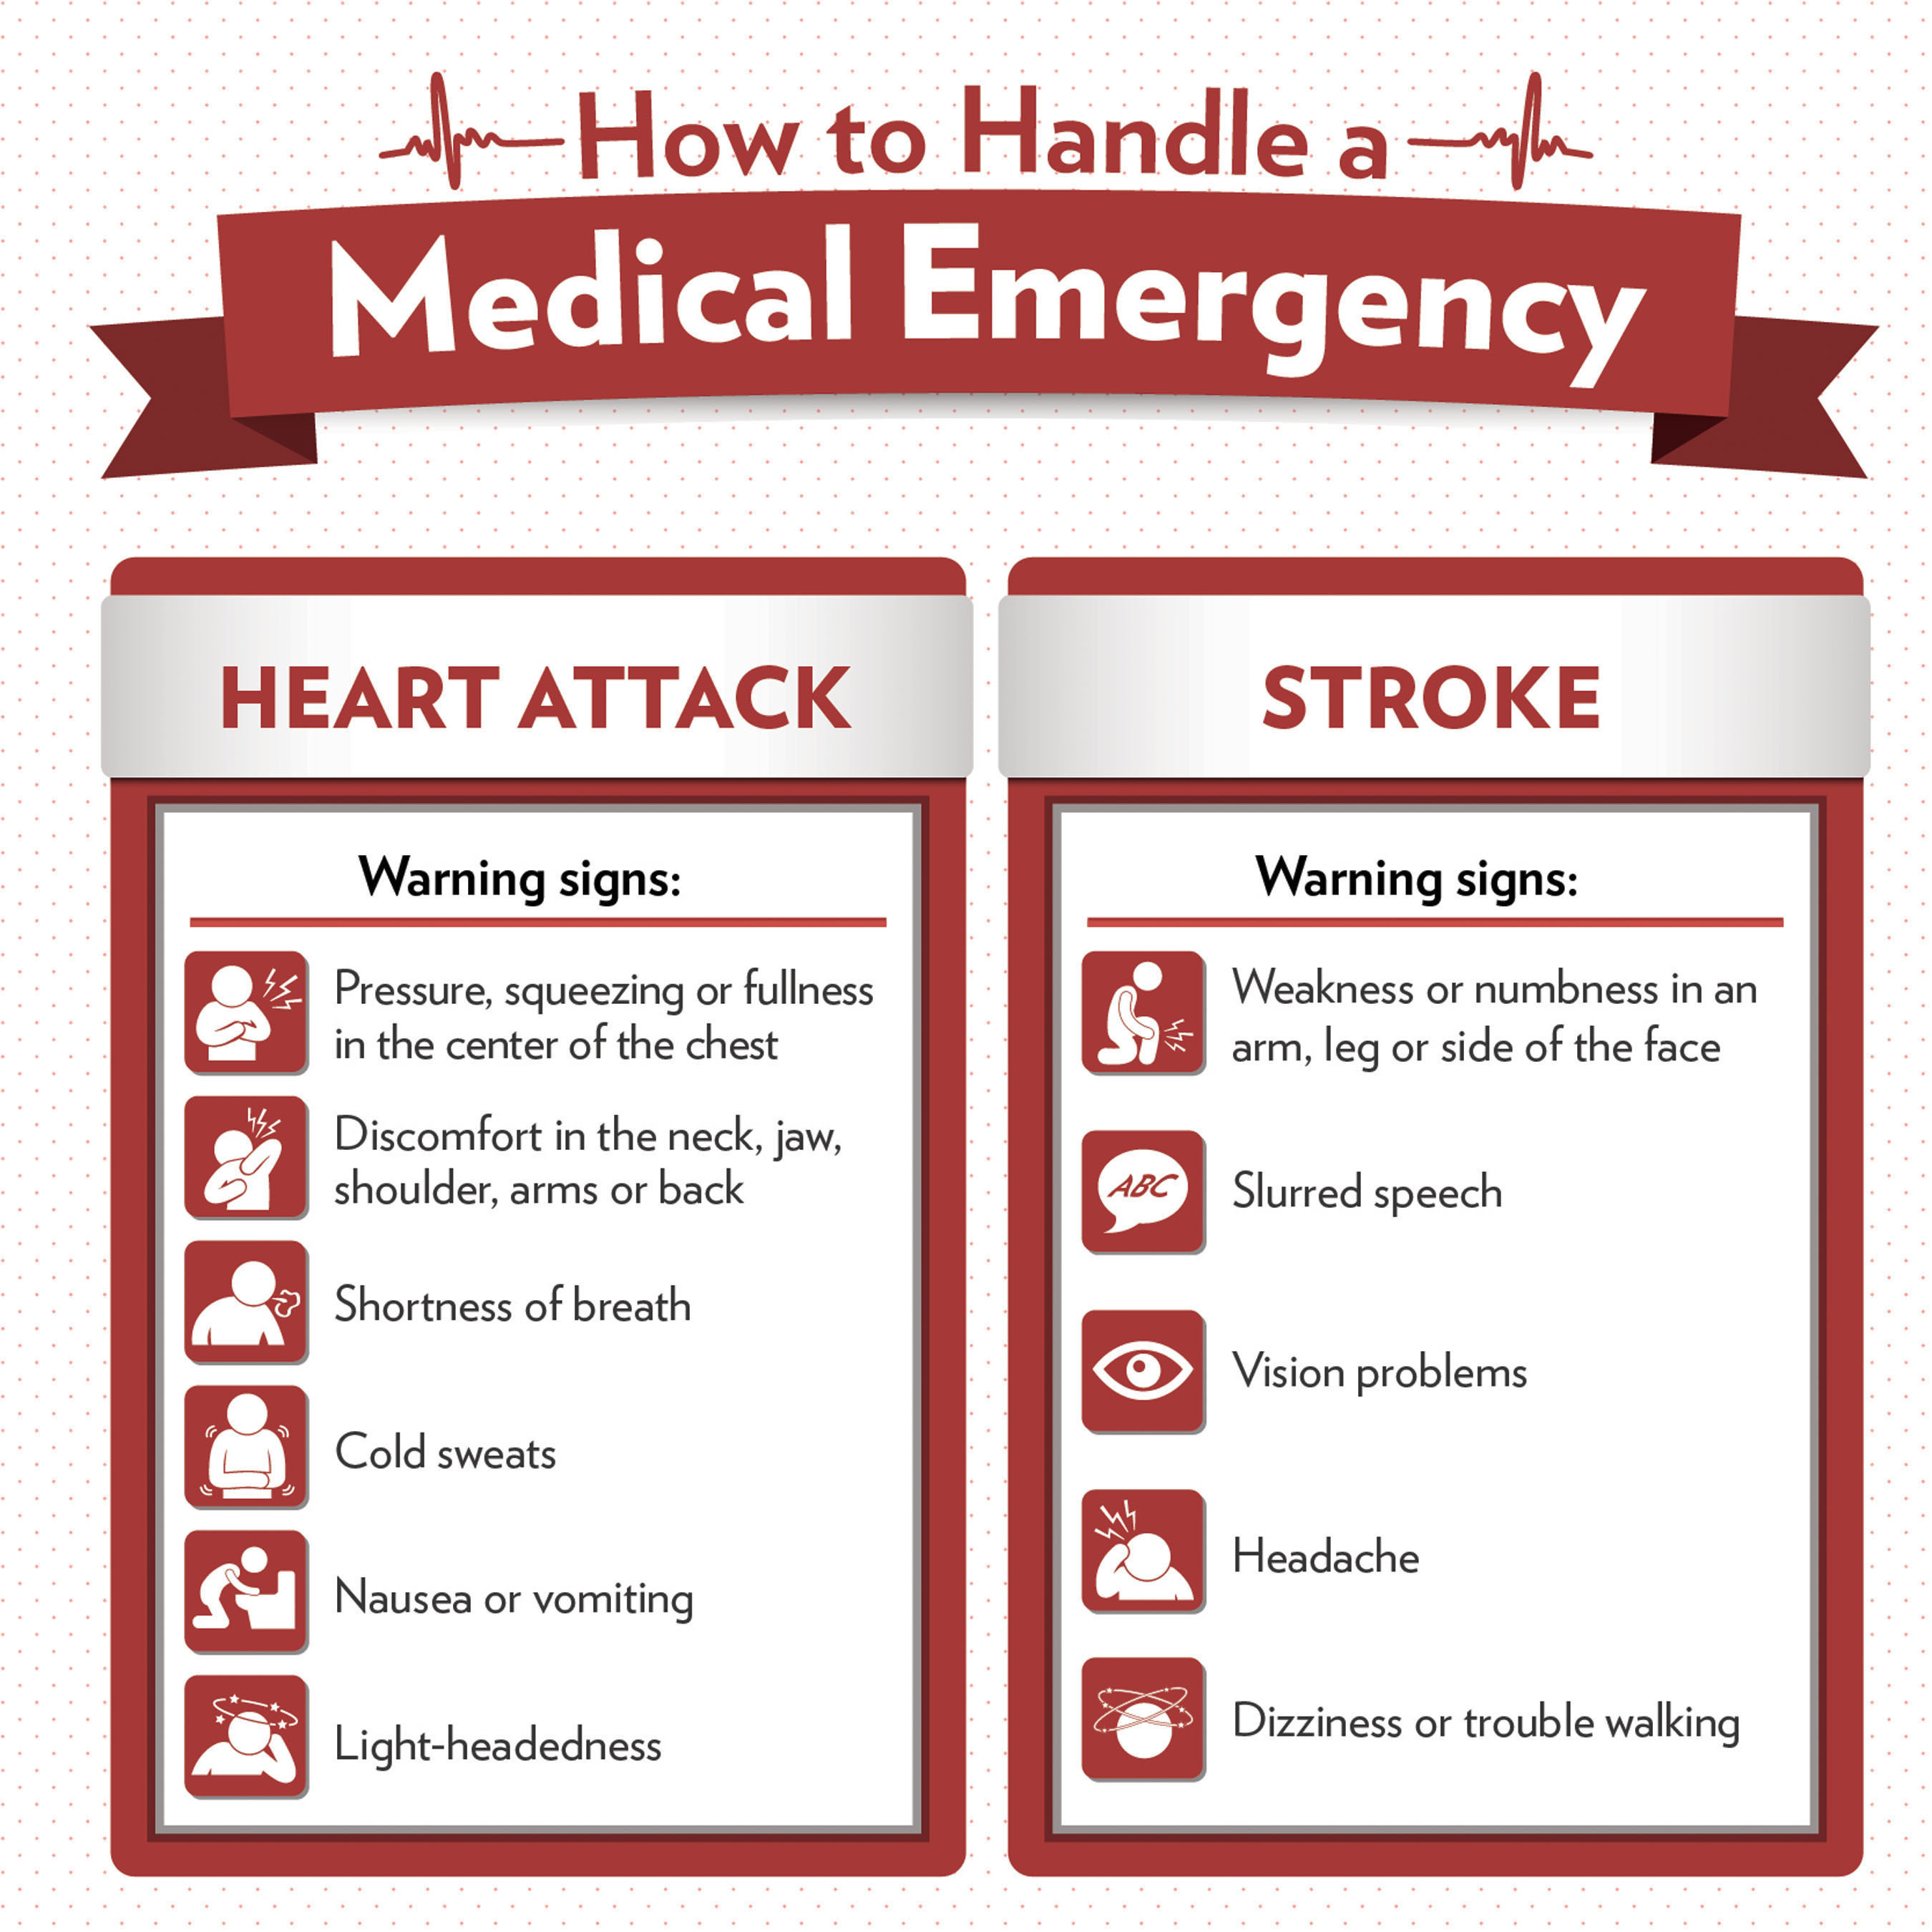 Learn how to handle a medical emergency. Go to mysilverage.com/medicalemergency for the full infographic.  (PRNewsFoto/MySilverAge)